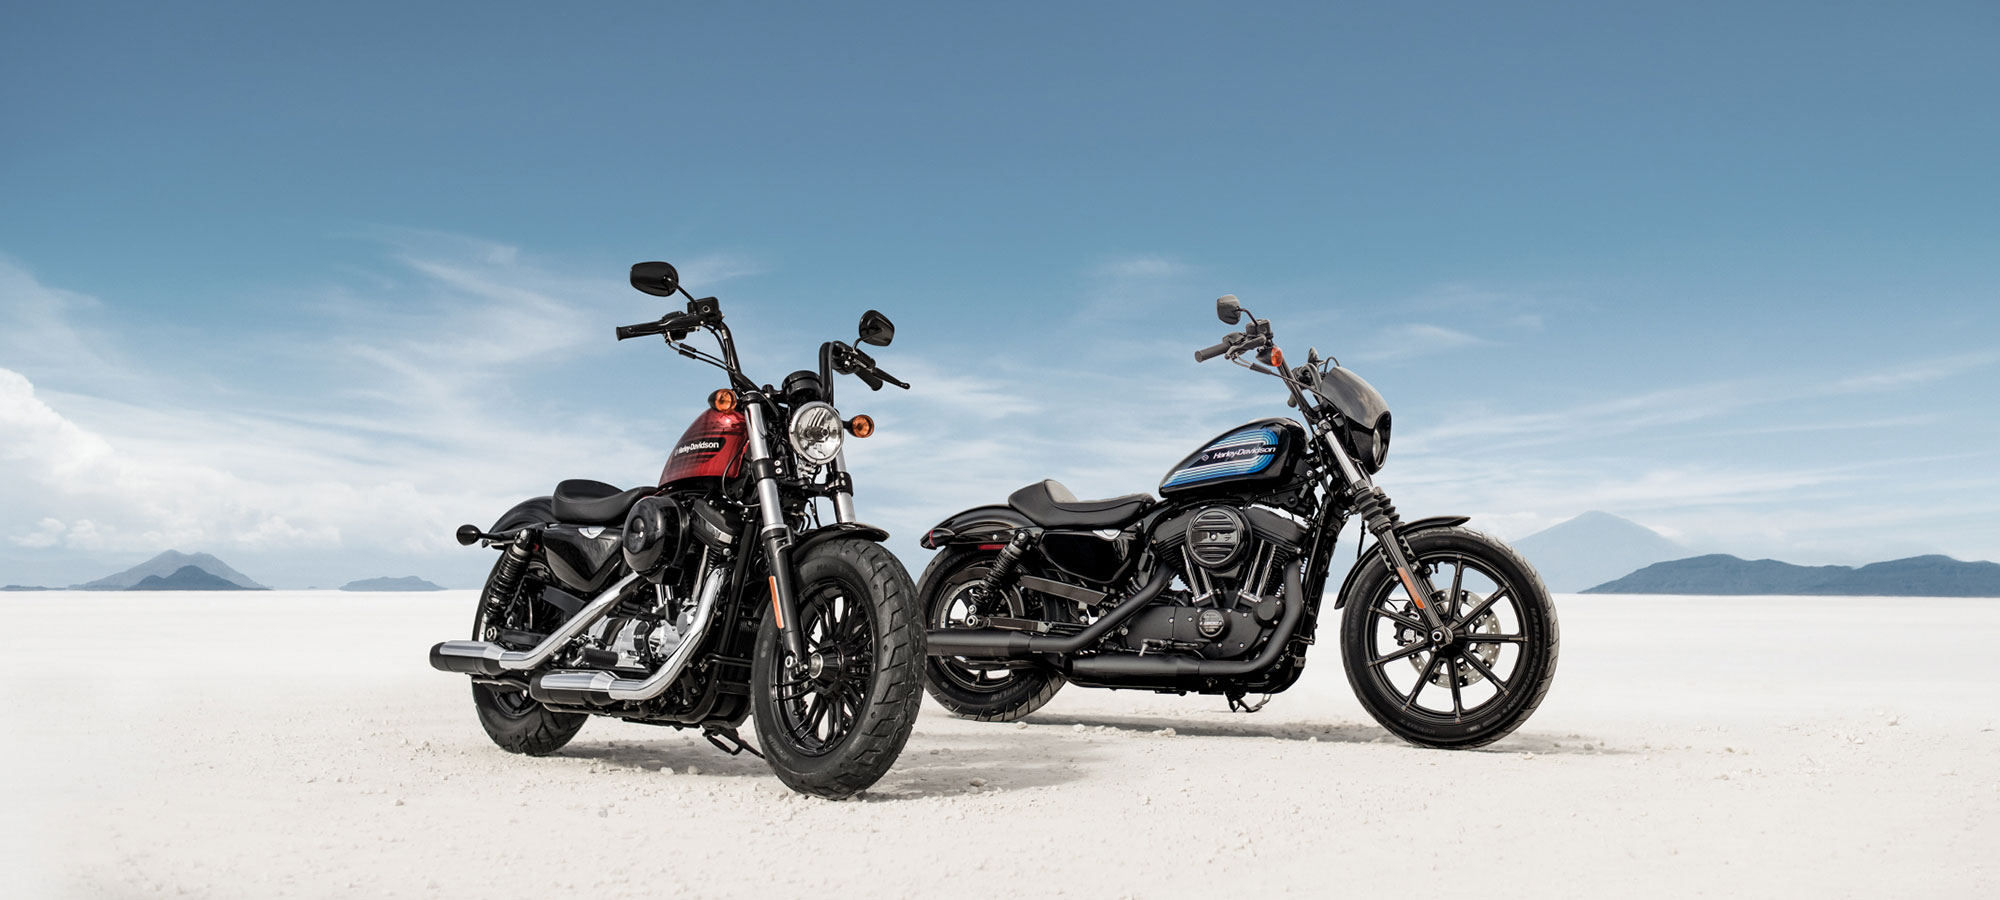 What S Old Is New Again With Harley Davidson S Forty Eight Special And Iron 1200 Sportsters Cycle World